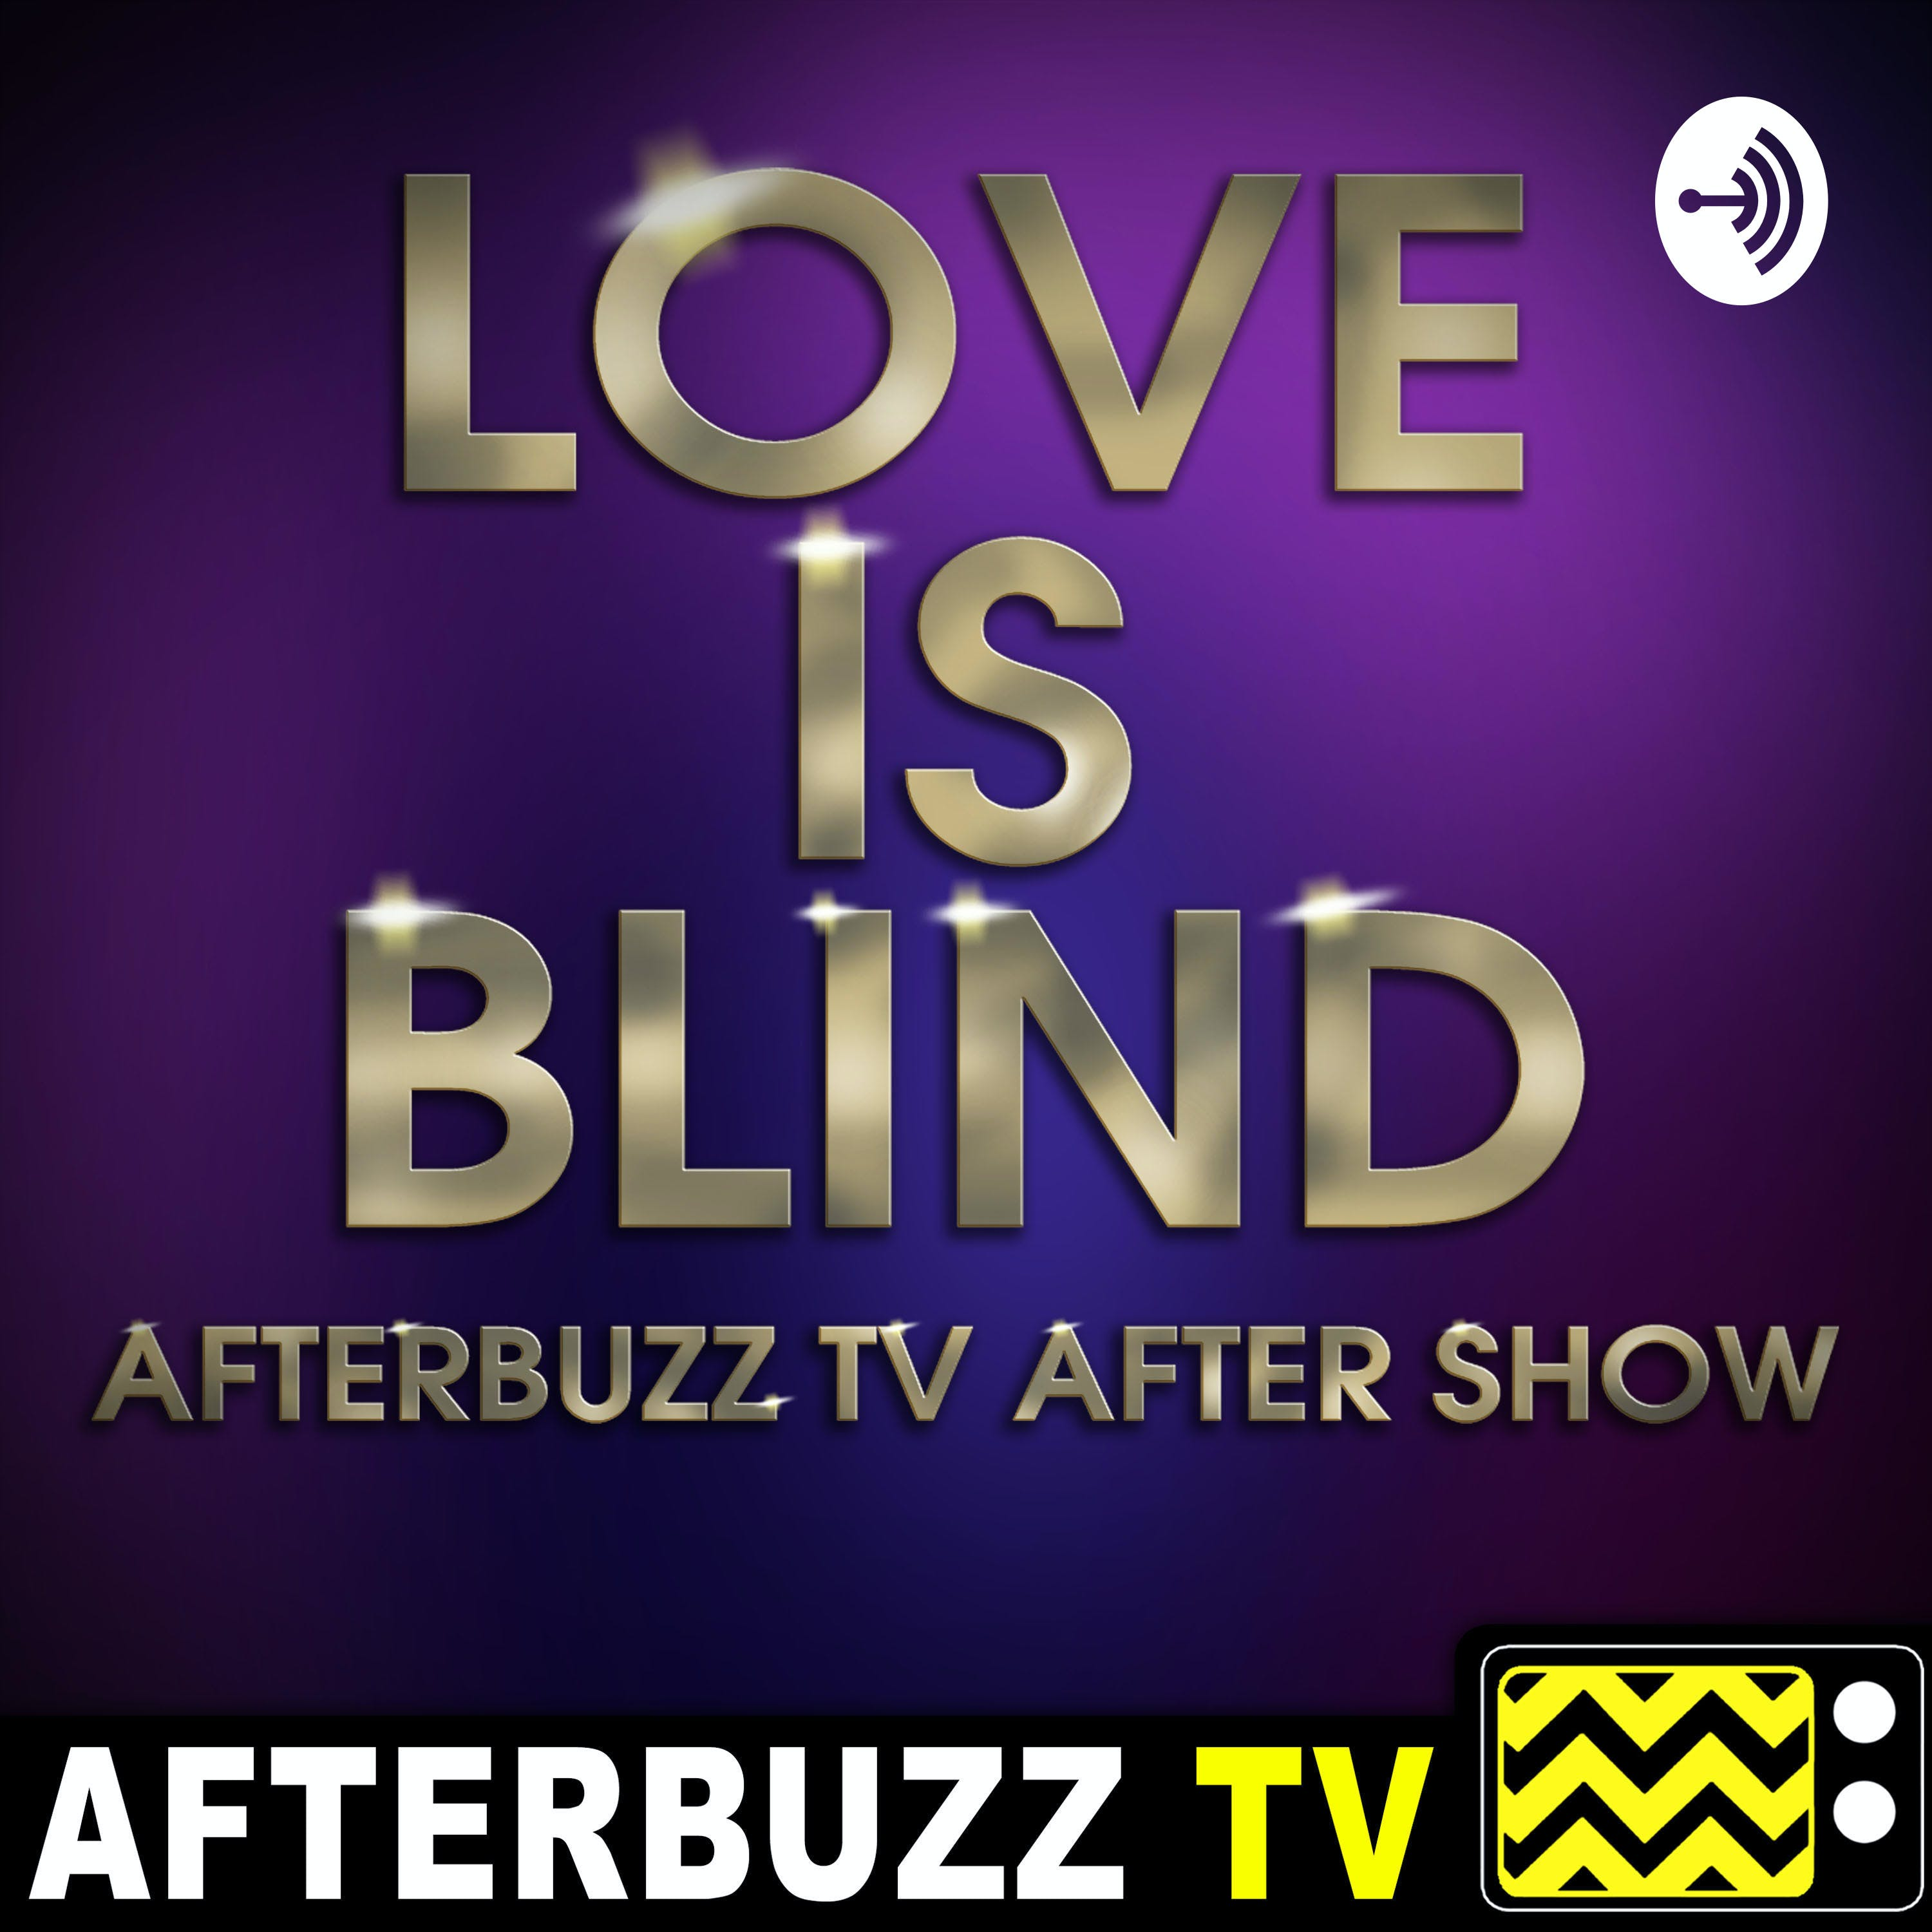 It's Family Time! - S1 E7 'Love is Blind' Recap & Review